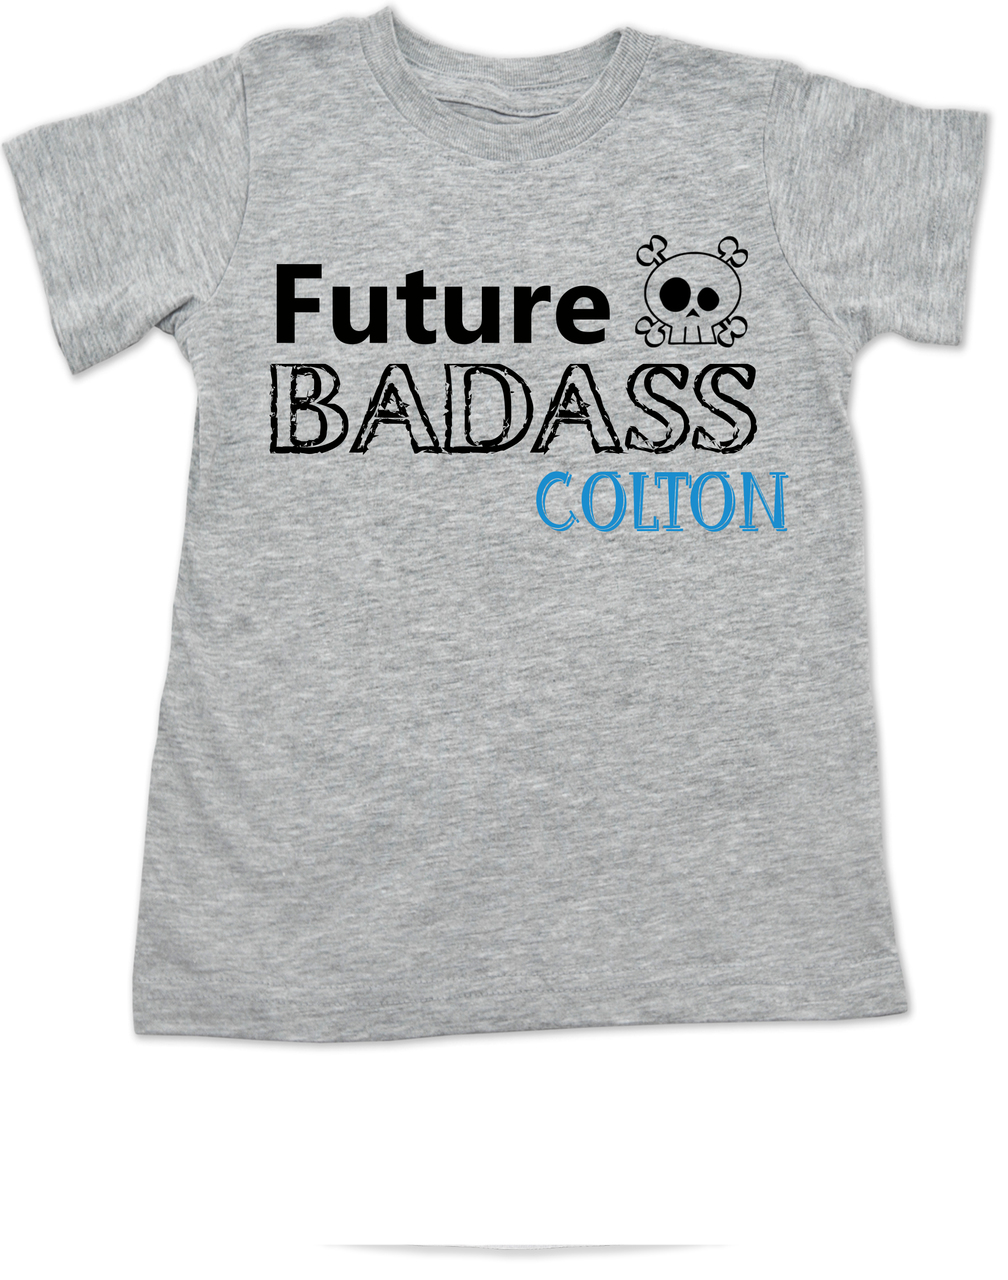 7803d59d Future Badass toddler shirt, skull toddler t-shirt, badass little boy,  badass